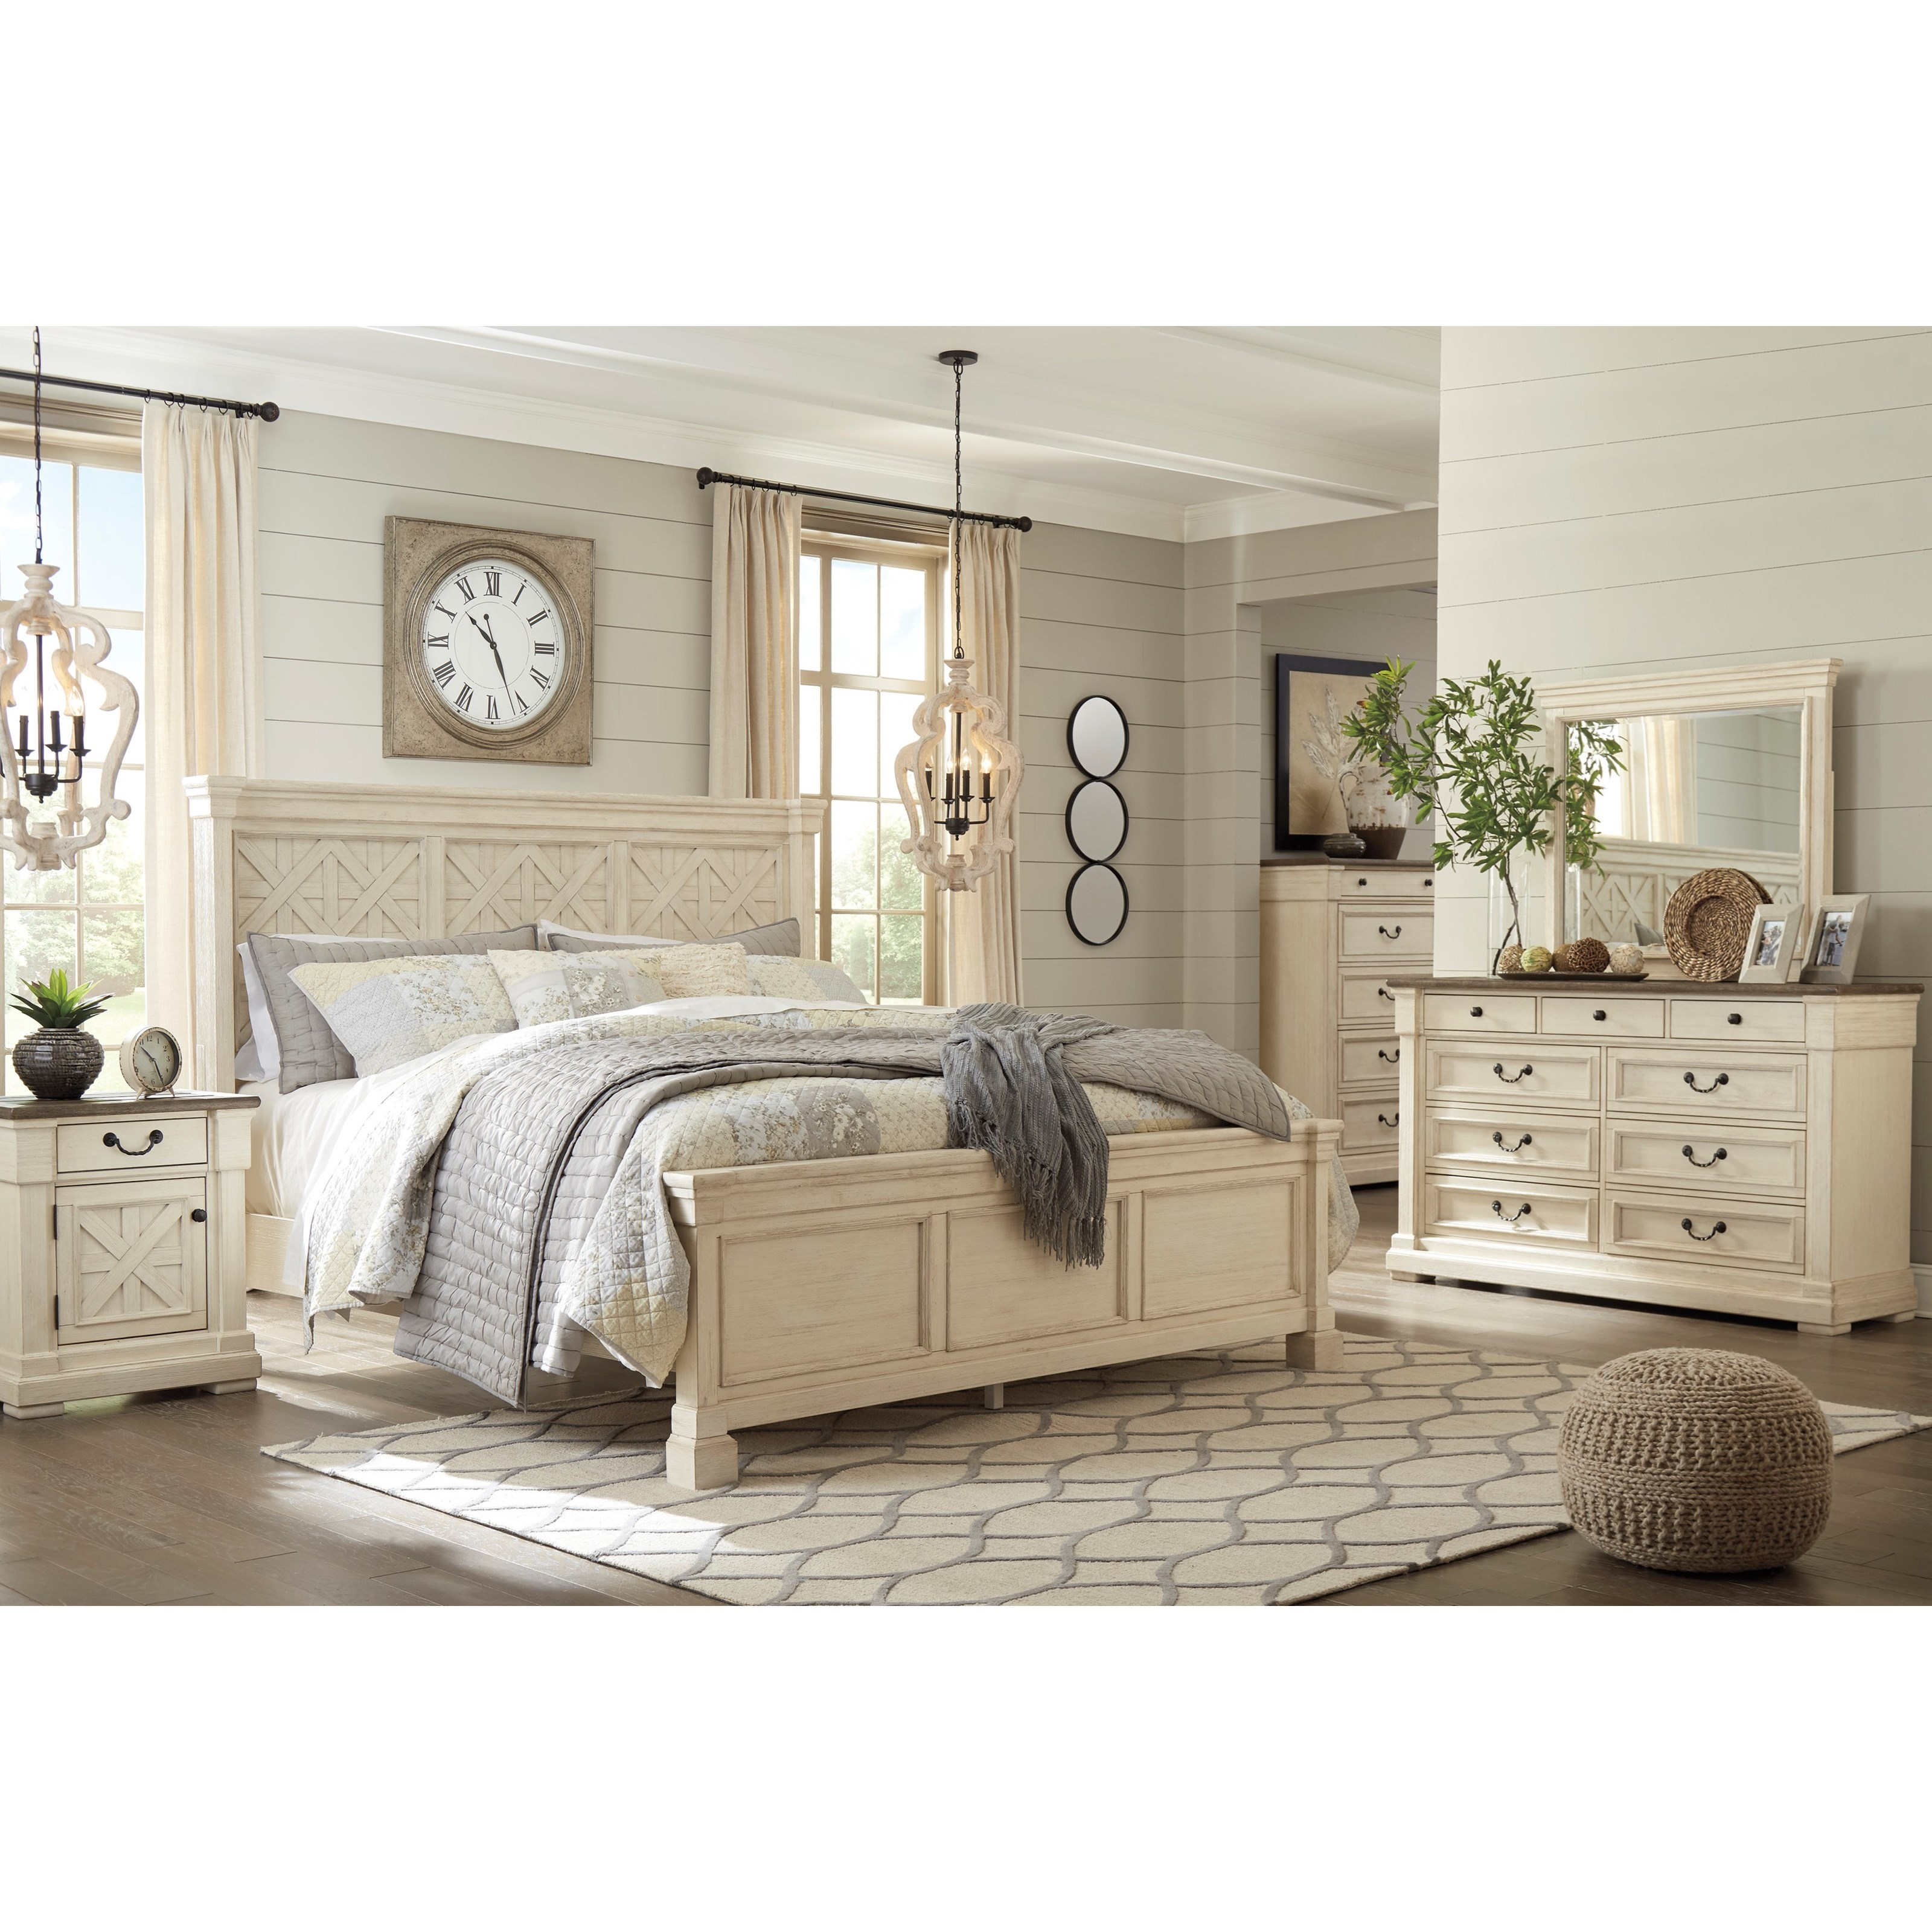 Bolanburg California King Bedroom Group by Signature Design by Ashley at Sparks HomeStore